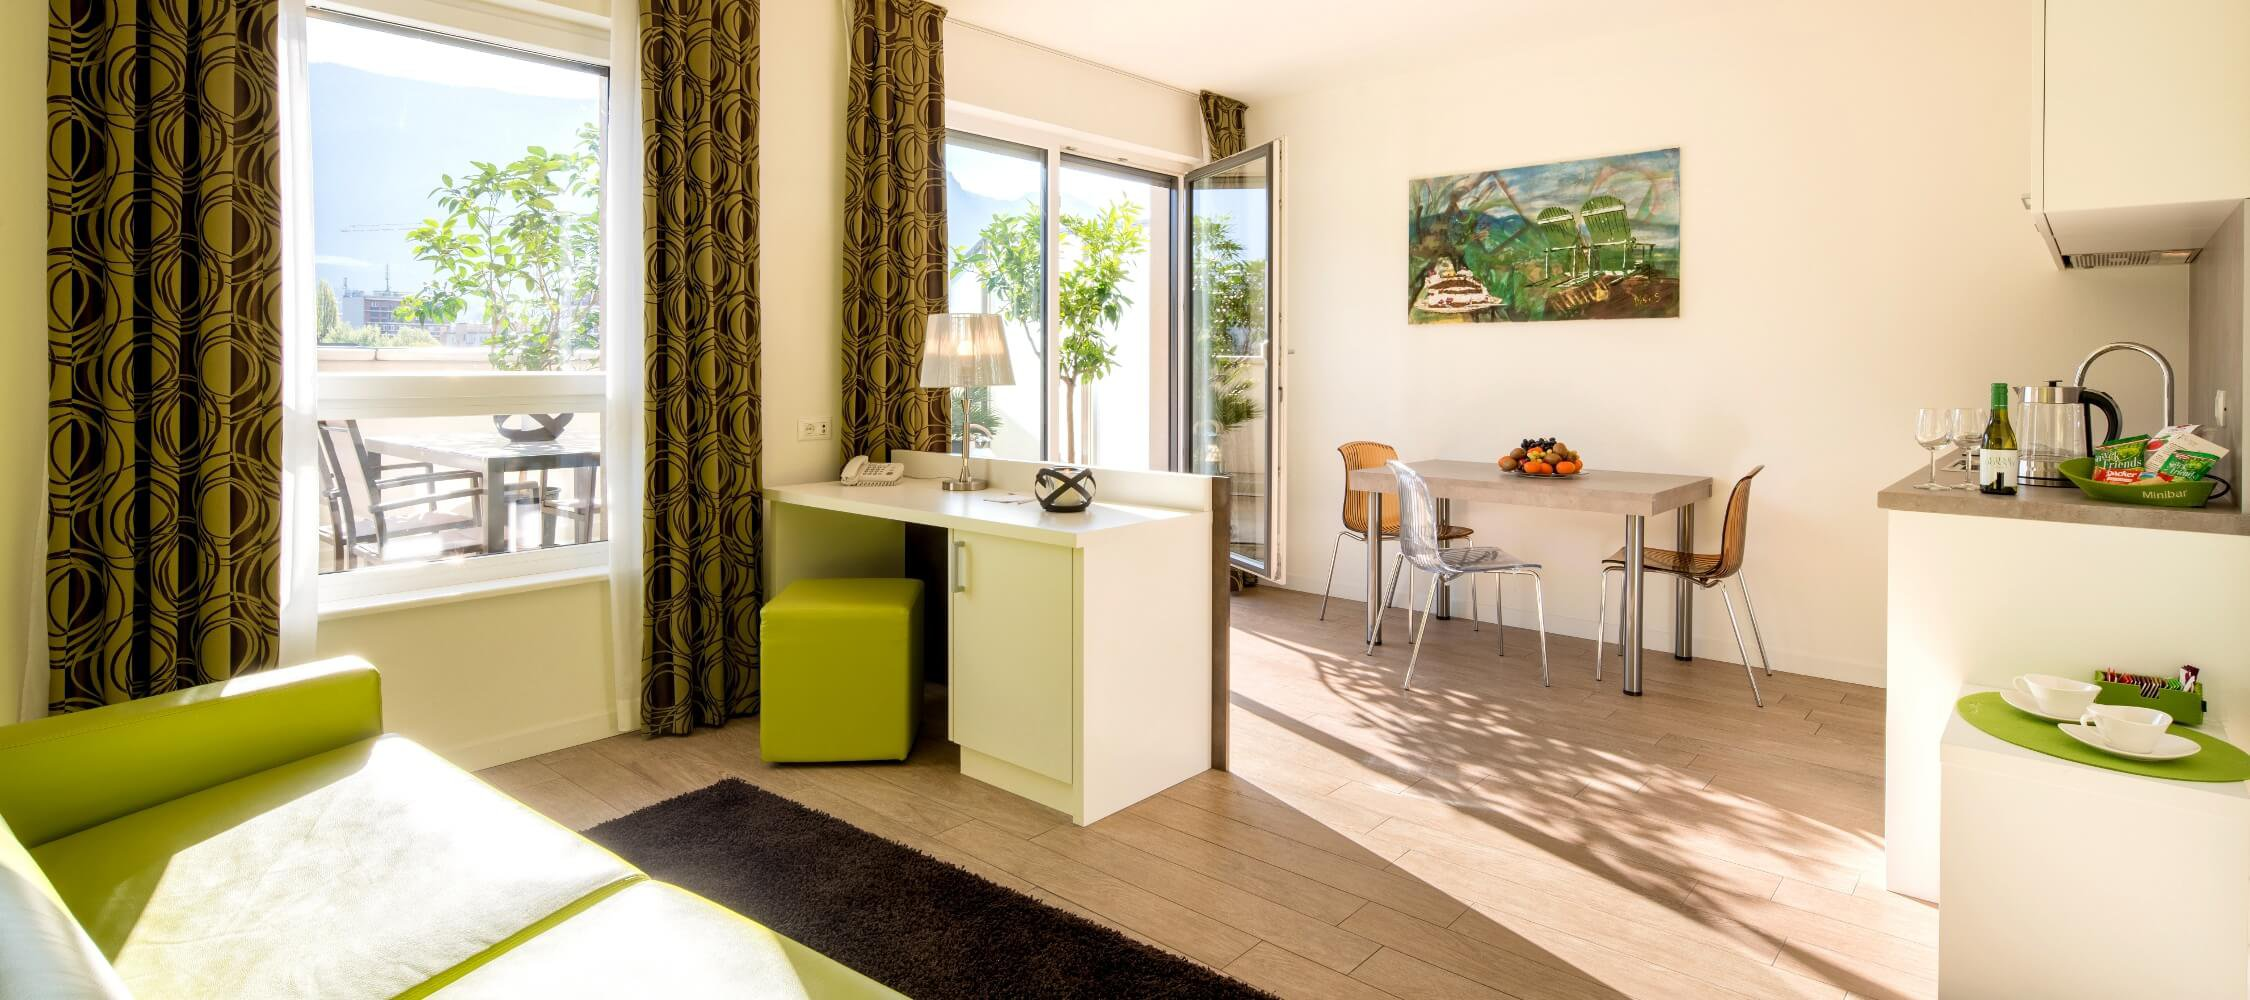 City Hotel Merano, 2-room Suite Panoramic (43-53m²), living room, spacious terrace on the 5th floor, stunning views over the rooftops of Merano